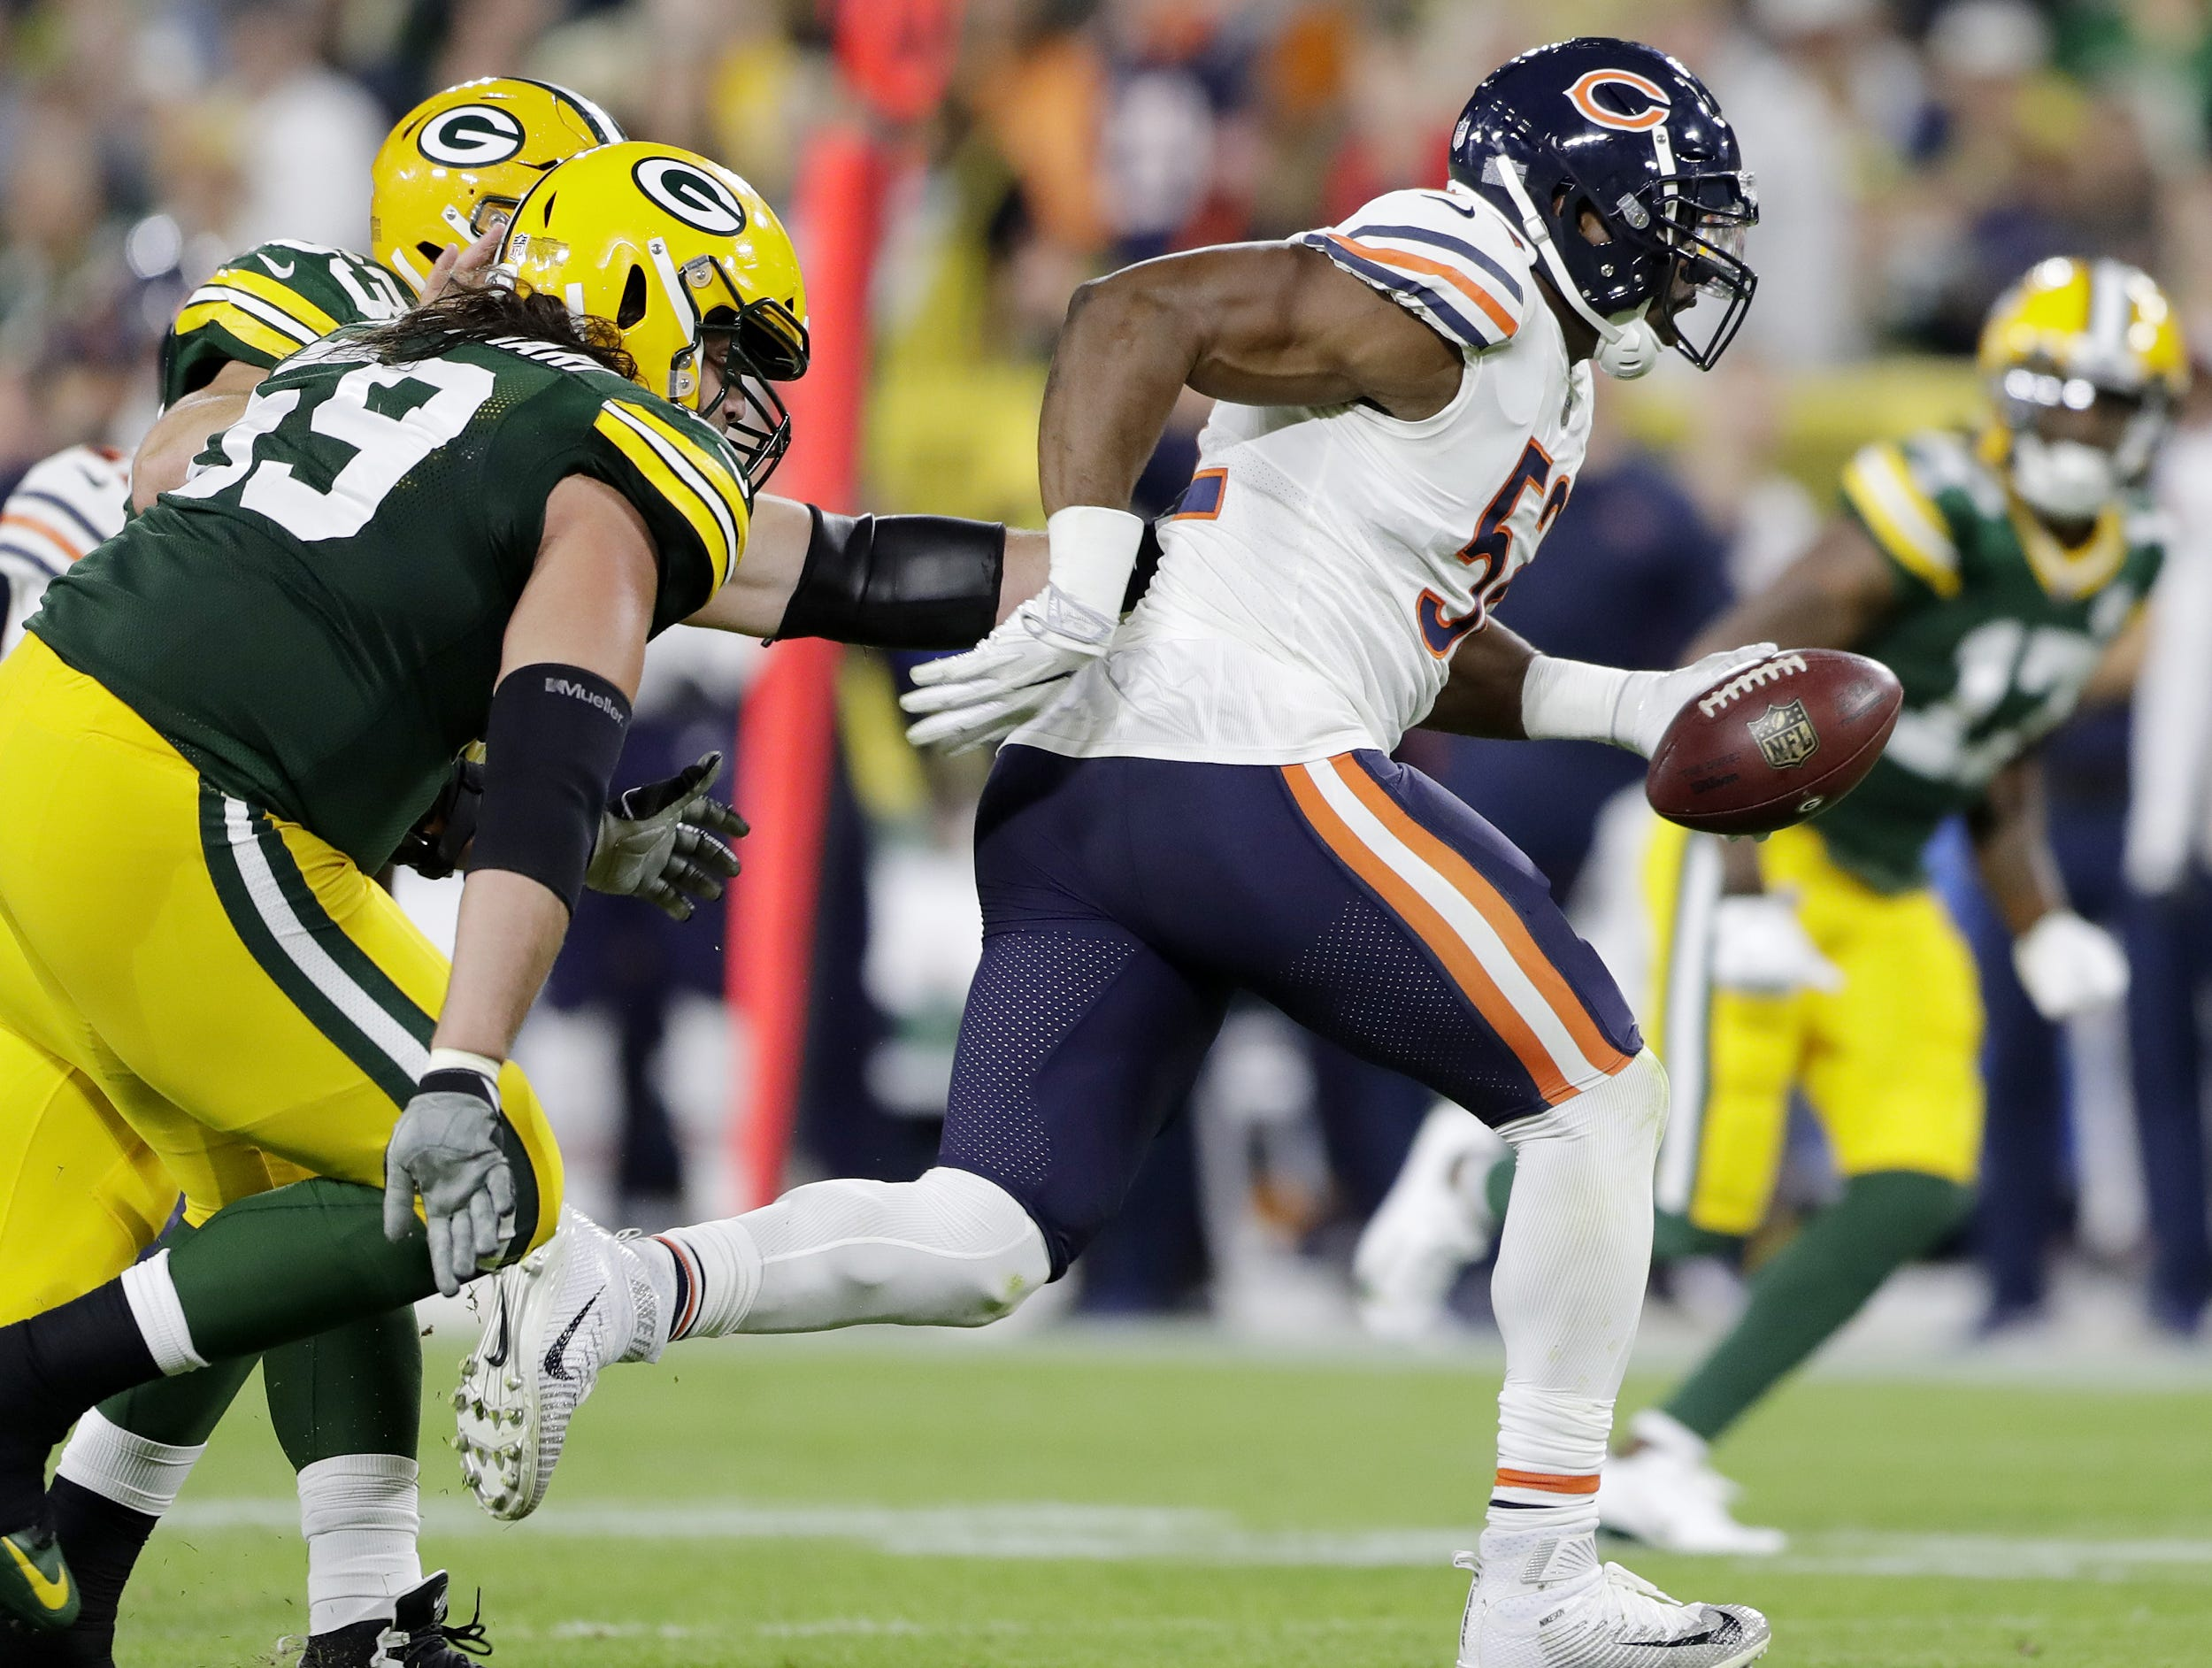 Chicago Bears linebacker Khalil Mack (52) scores a touchdown against the Green Bay Packers in the second quarter at Lambeau Field on Sunday, September 9, 2018 in Green Bay, Wis. Adam Wesley/USA TODAY NETWORK-Wisconsin